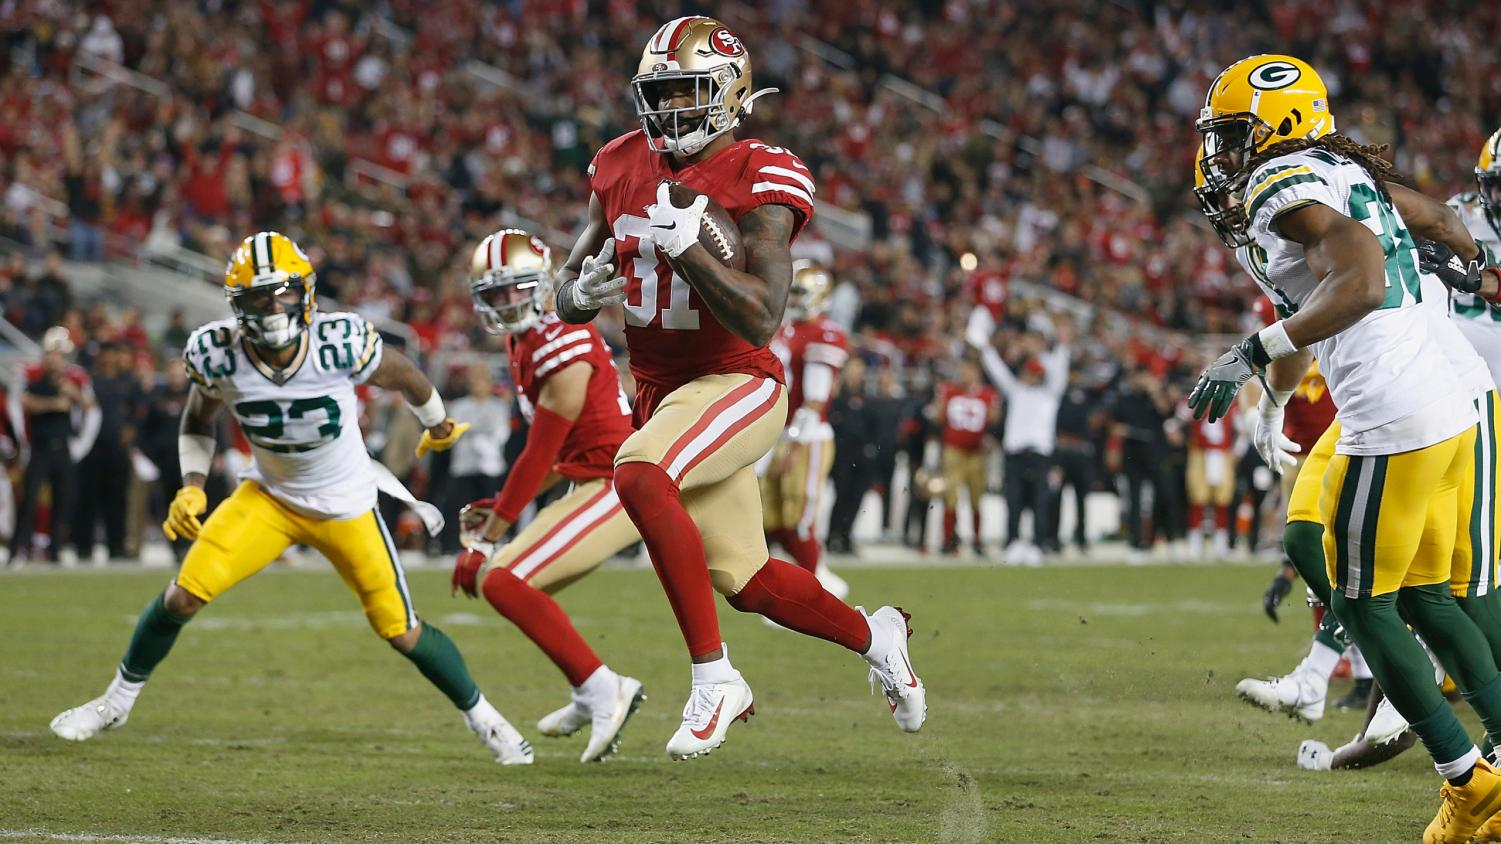 The Niners smash the Packers at home, giving them full control of the #1 seed in the NFC.